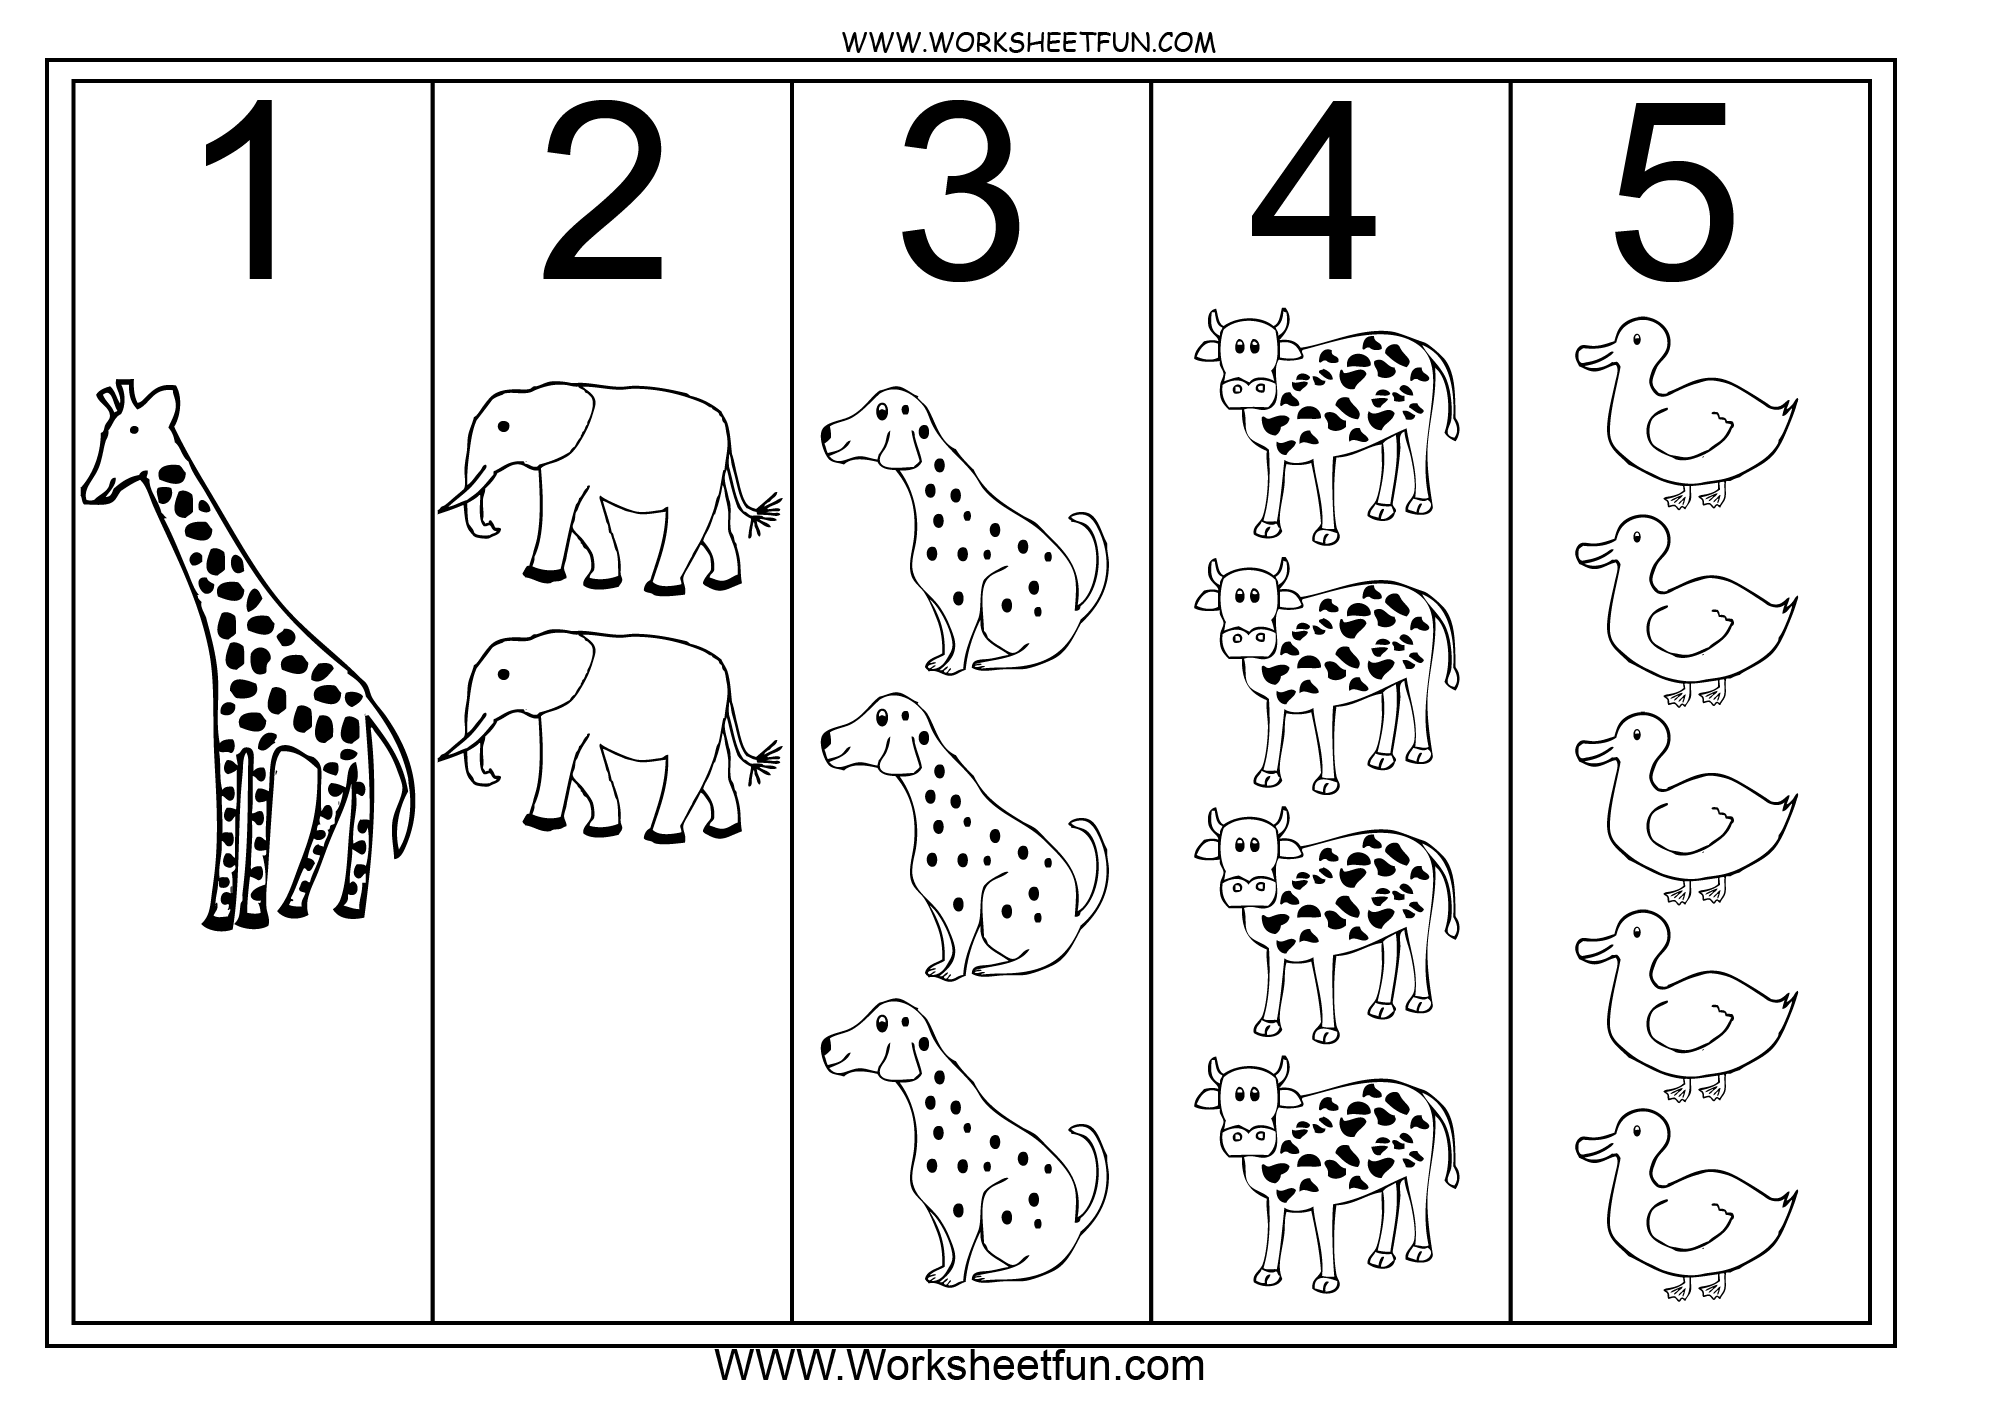 Worksheets Teaching Numbers 1 10 Deployday – Number 1 Worksheet